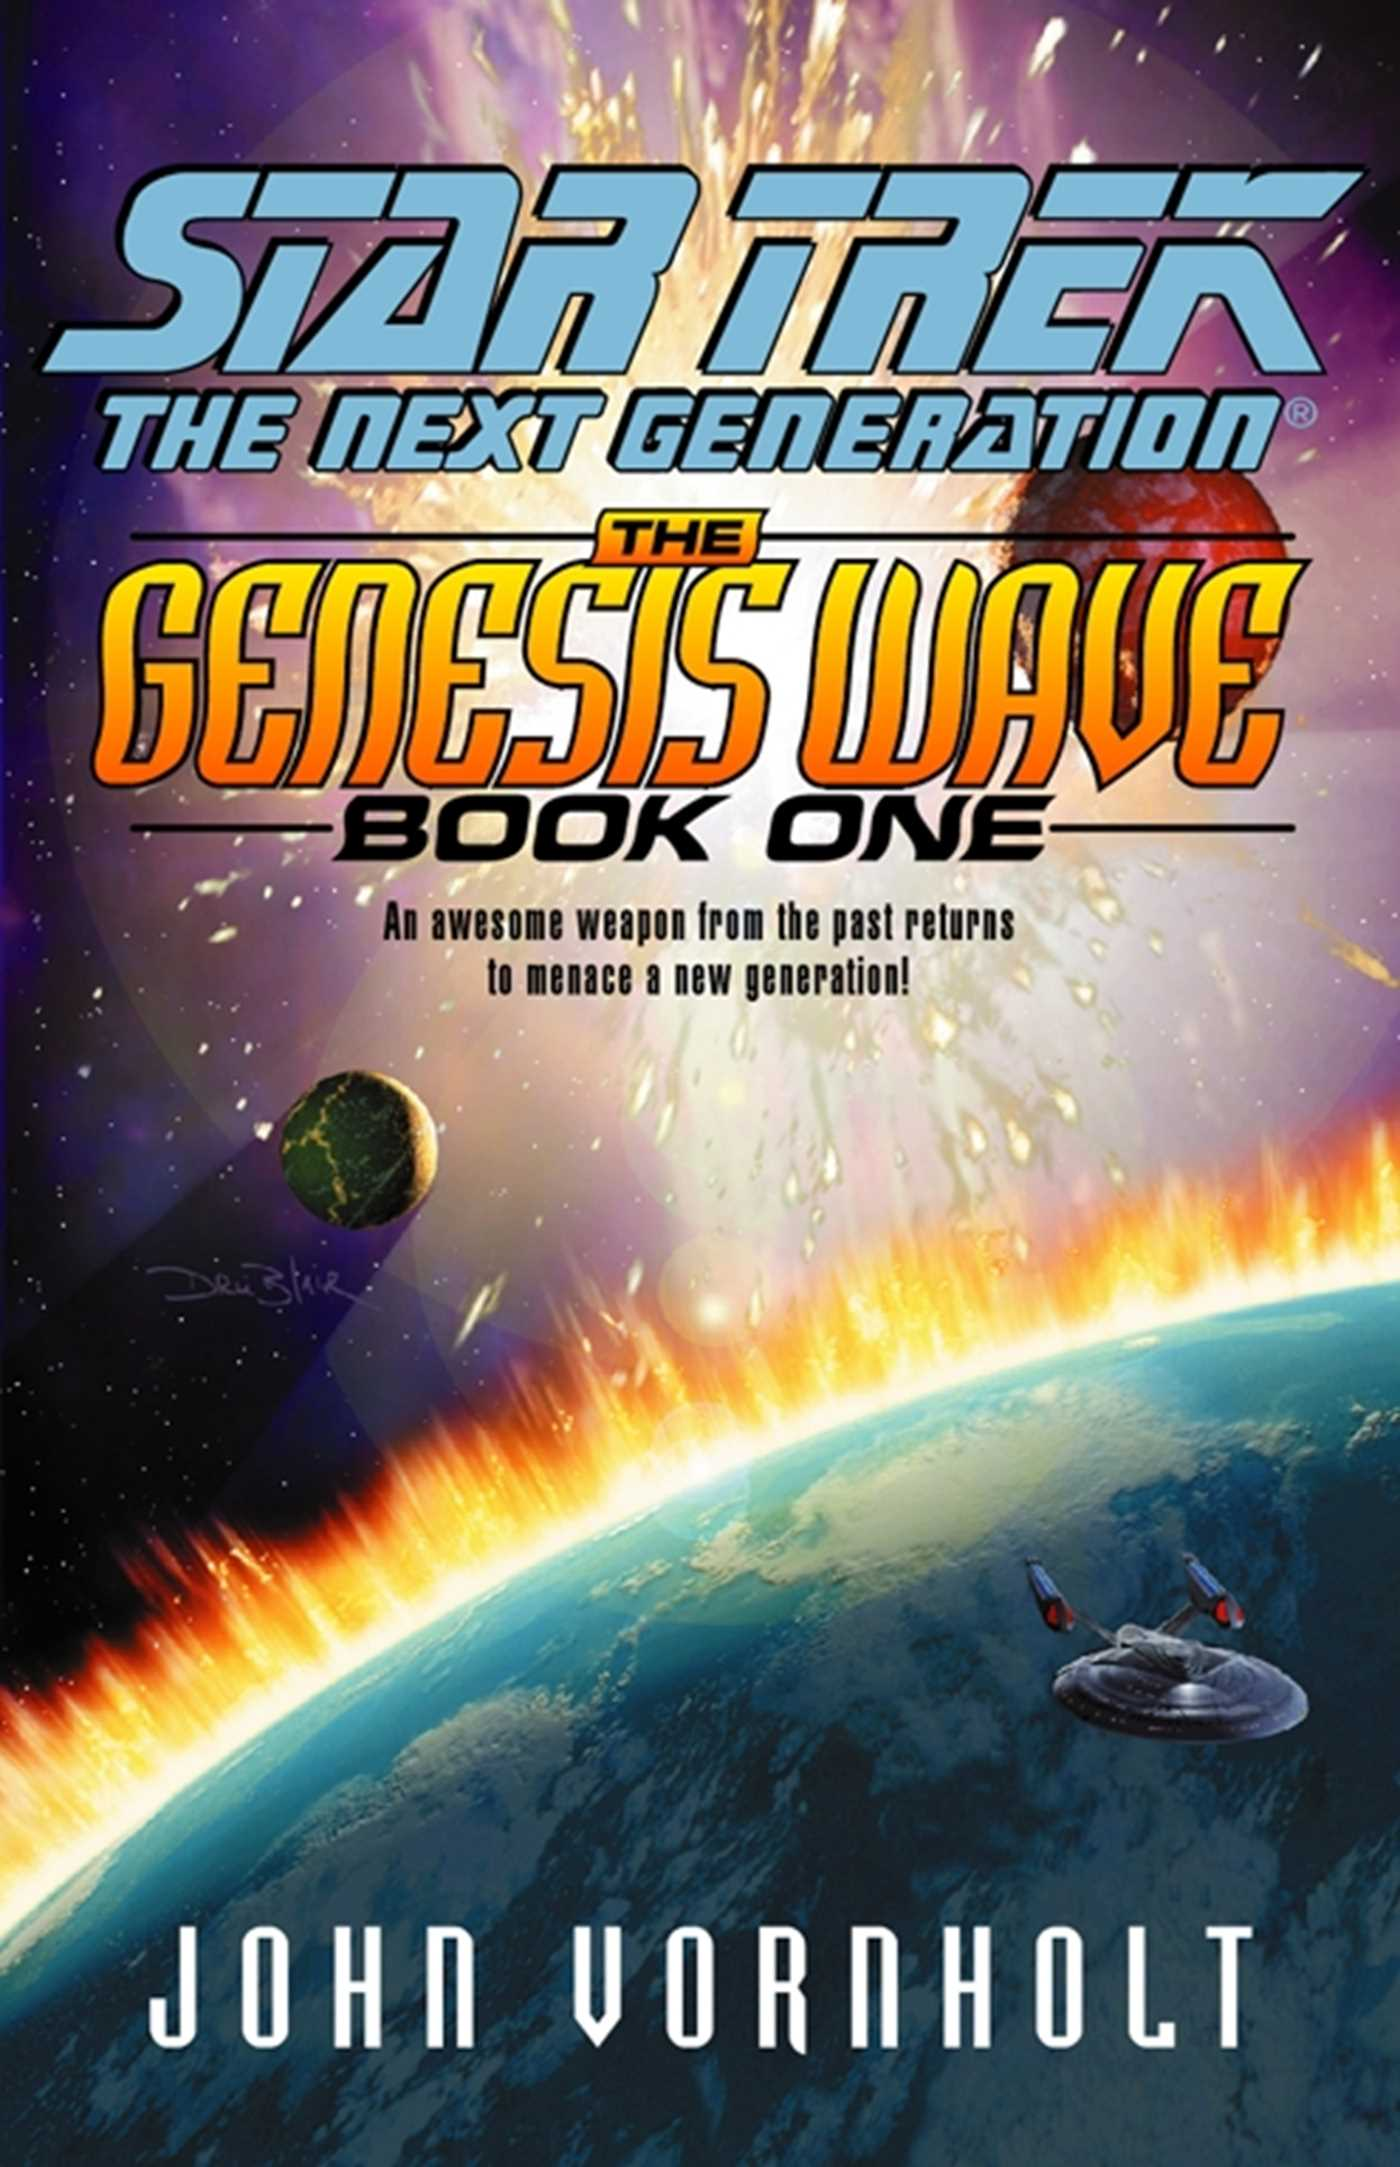 The-star-trek-the-next-generation-genesis-wave-book-one-9780743419543_hr